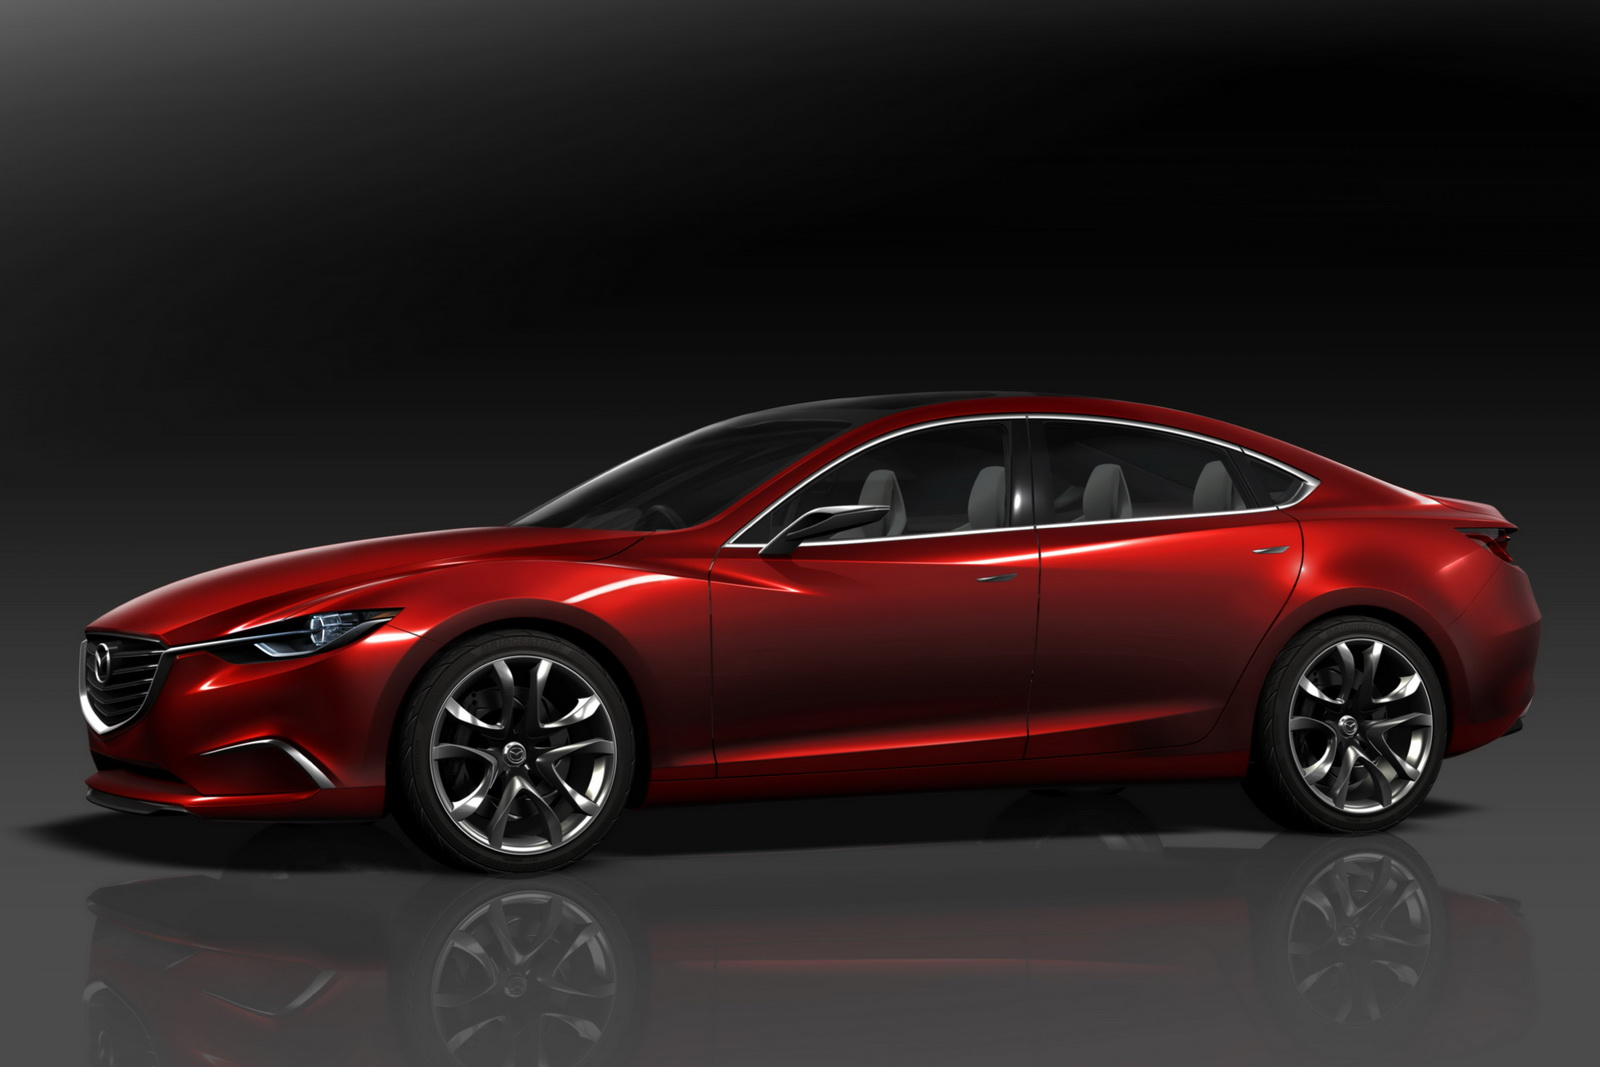 Red Mazda V6 2015 Amazing Pictures And Images Look At The Car